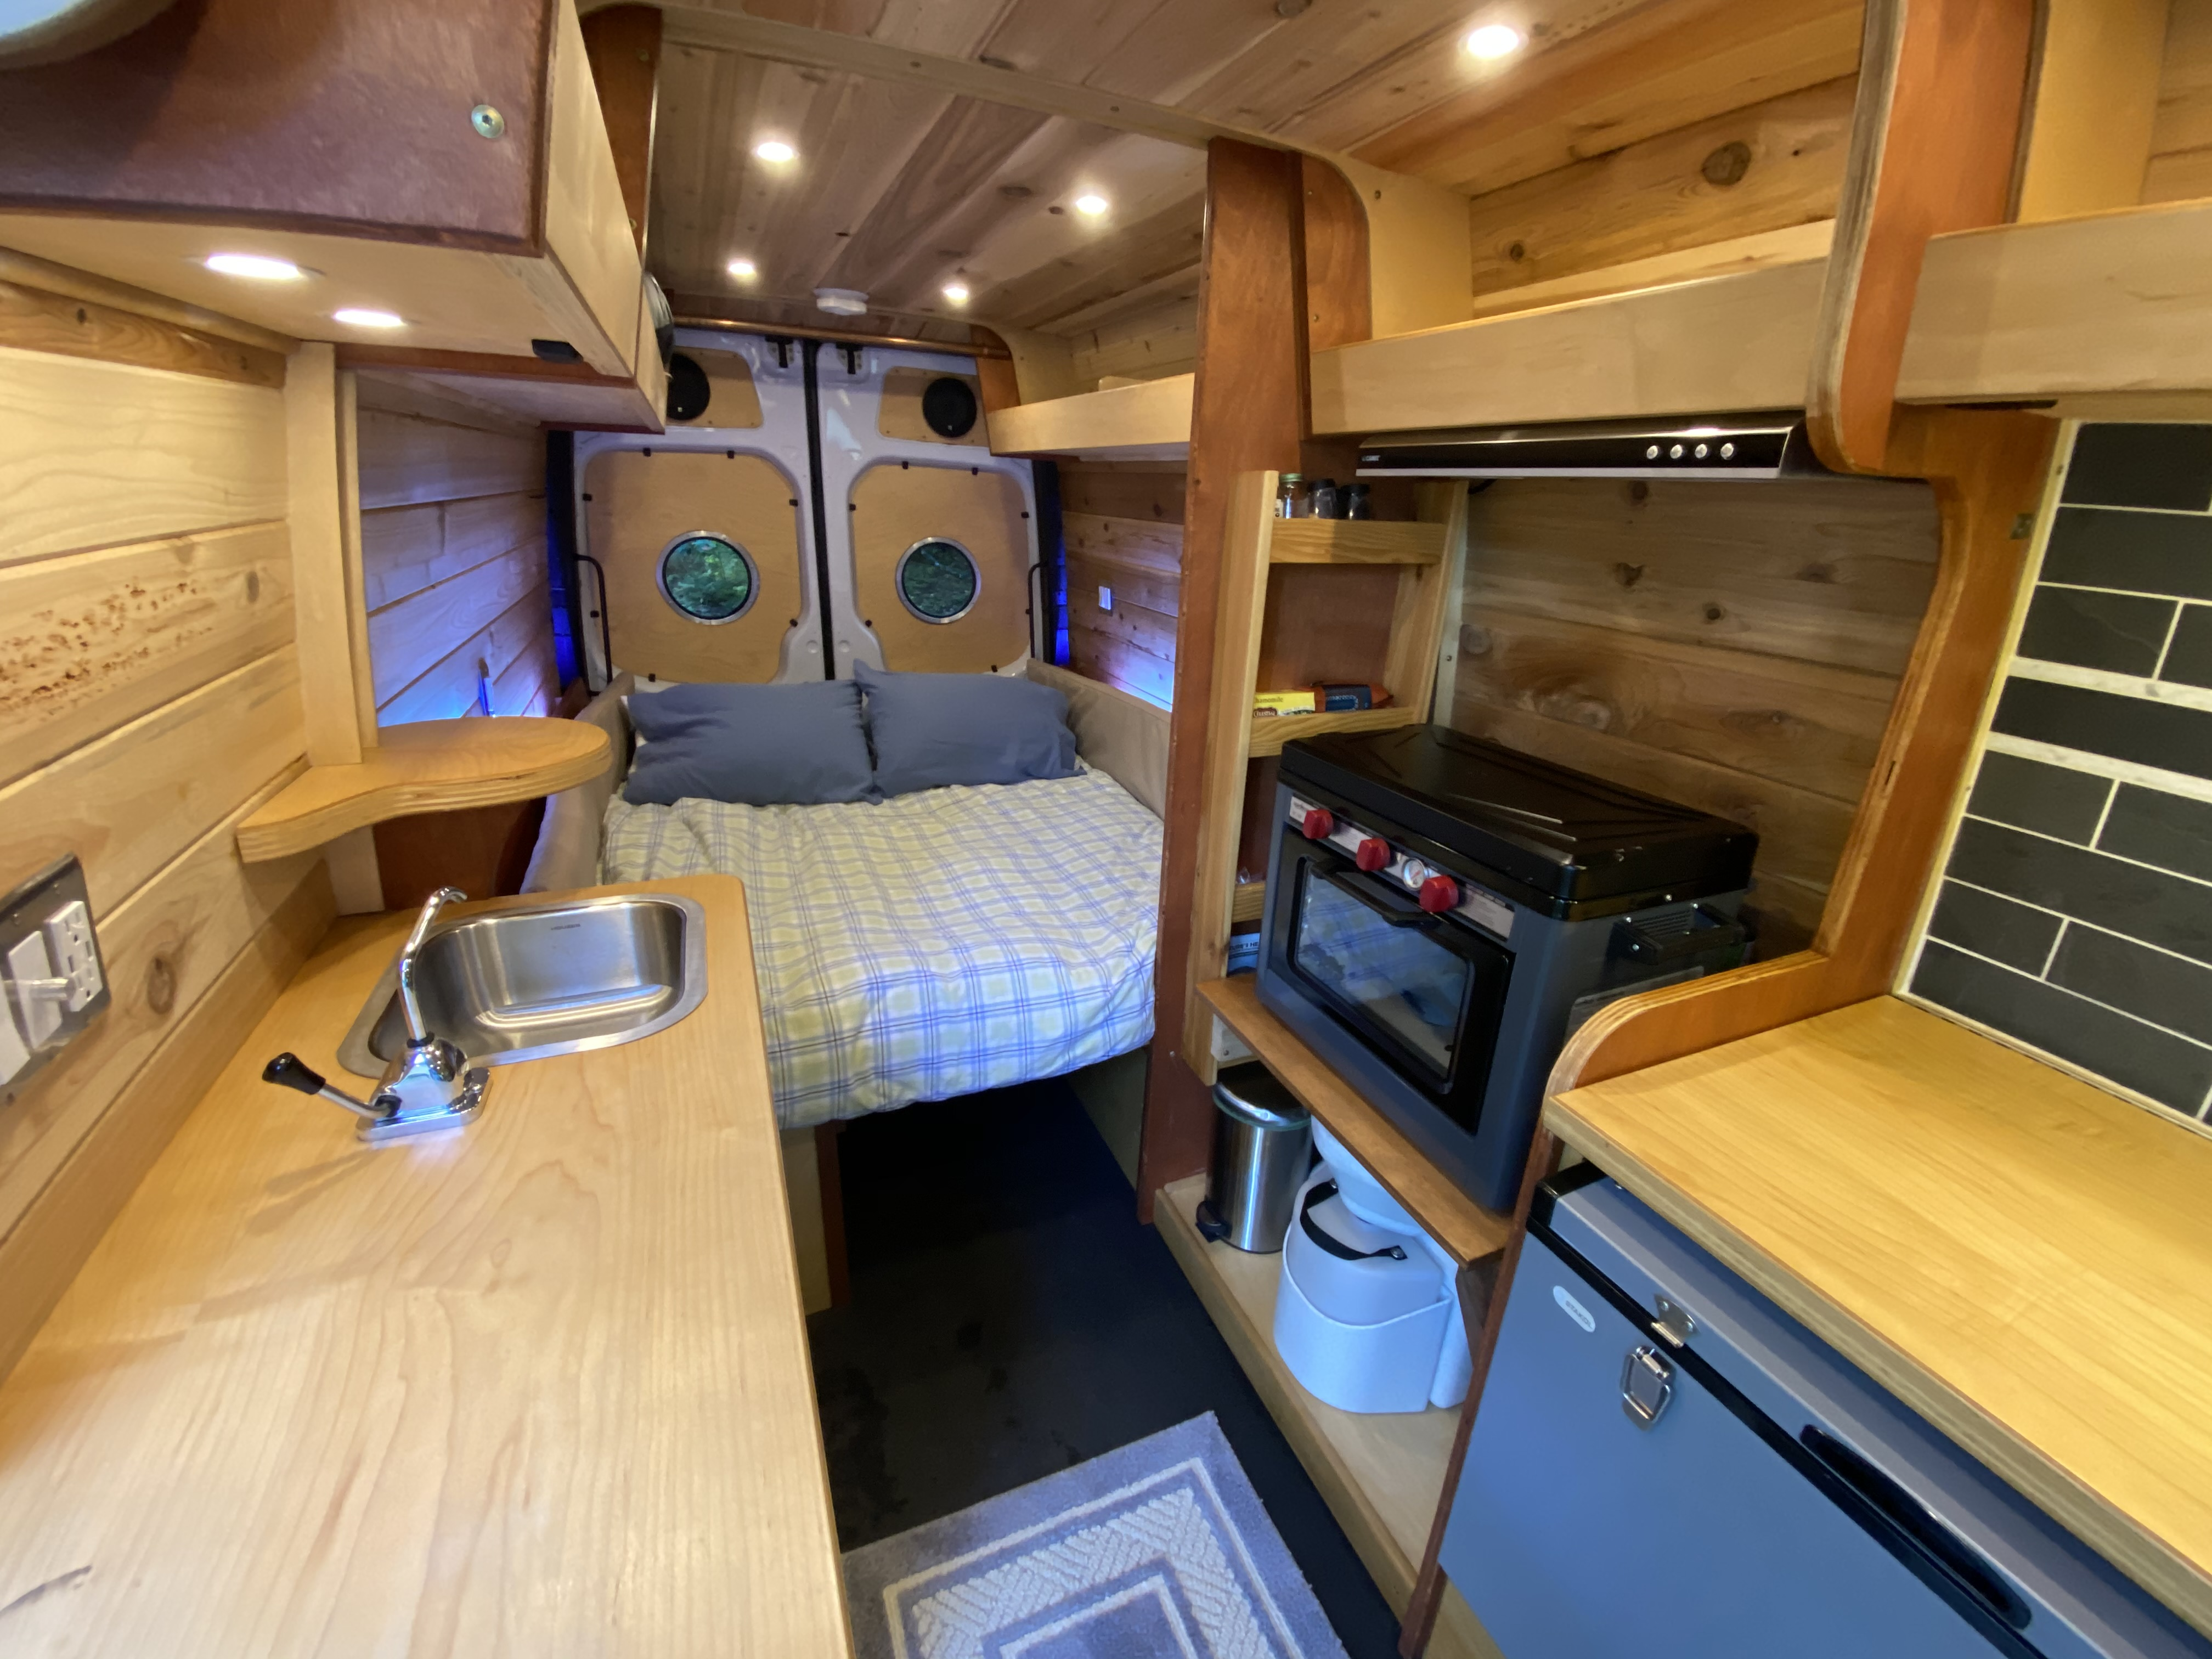 Sleeping space for two (short queen) converts into dining space for four with ease. Mercedes-Benz Sprinter 2008